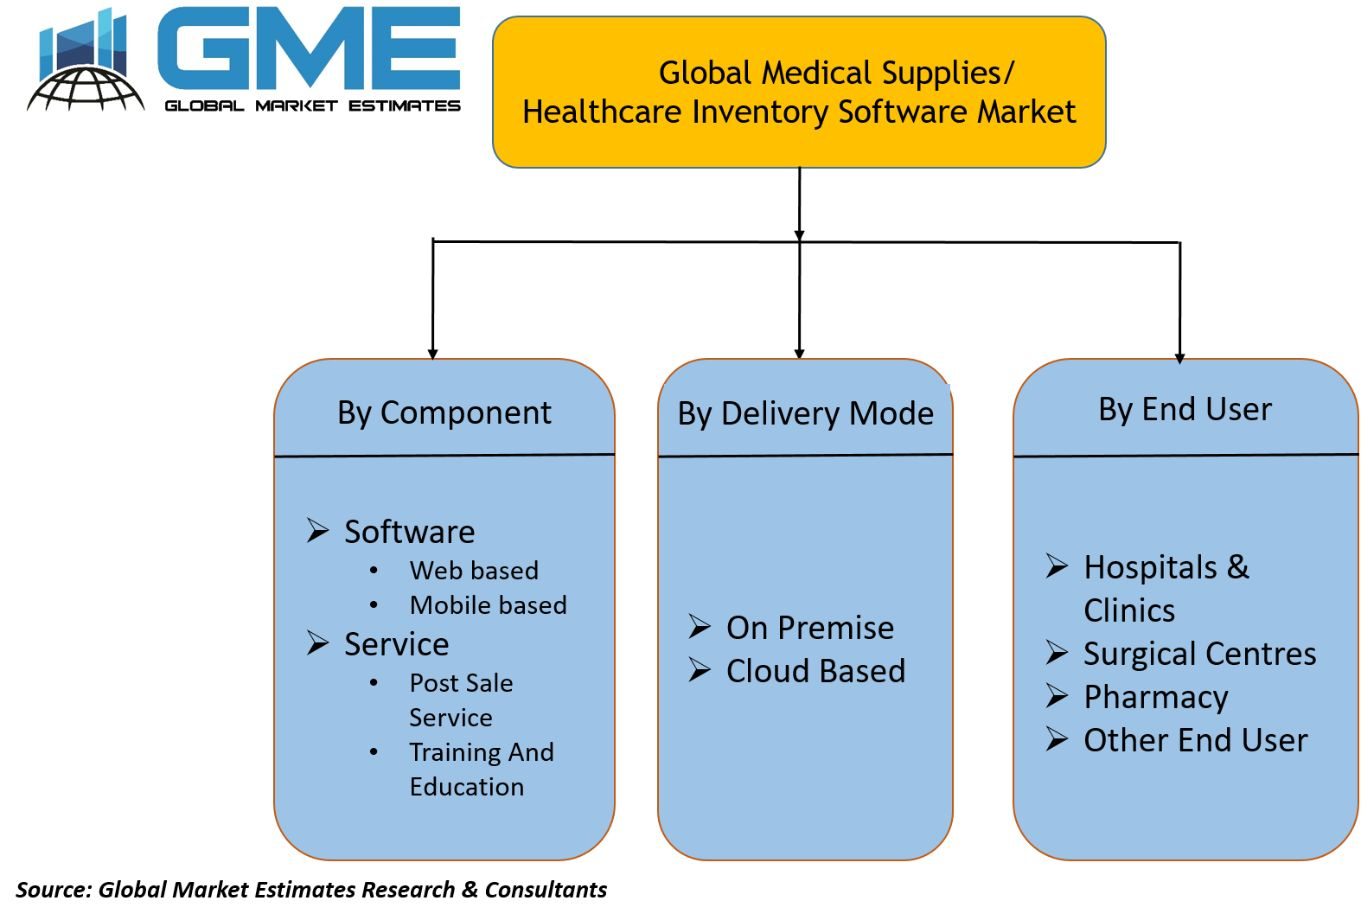 Medical Supplies Healthcare Inventory Software Market Segmentation